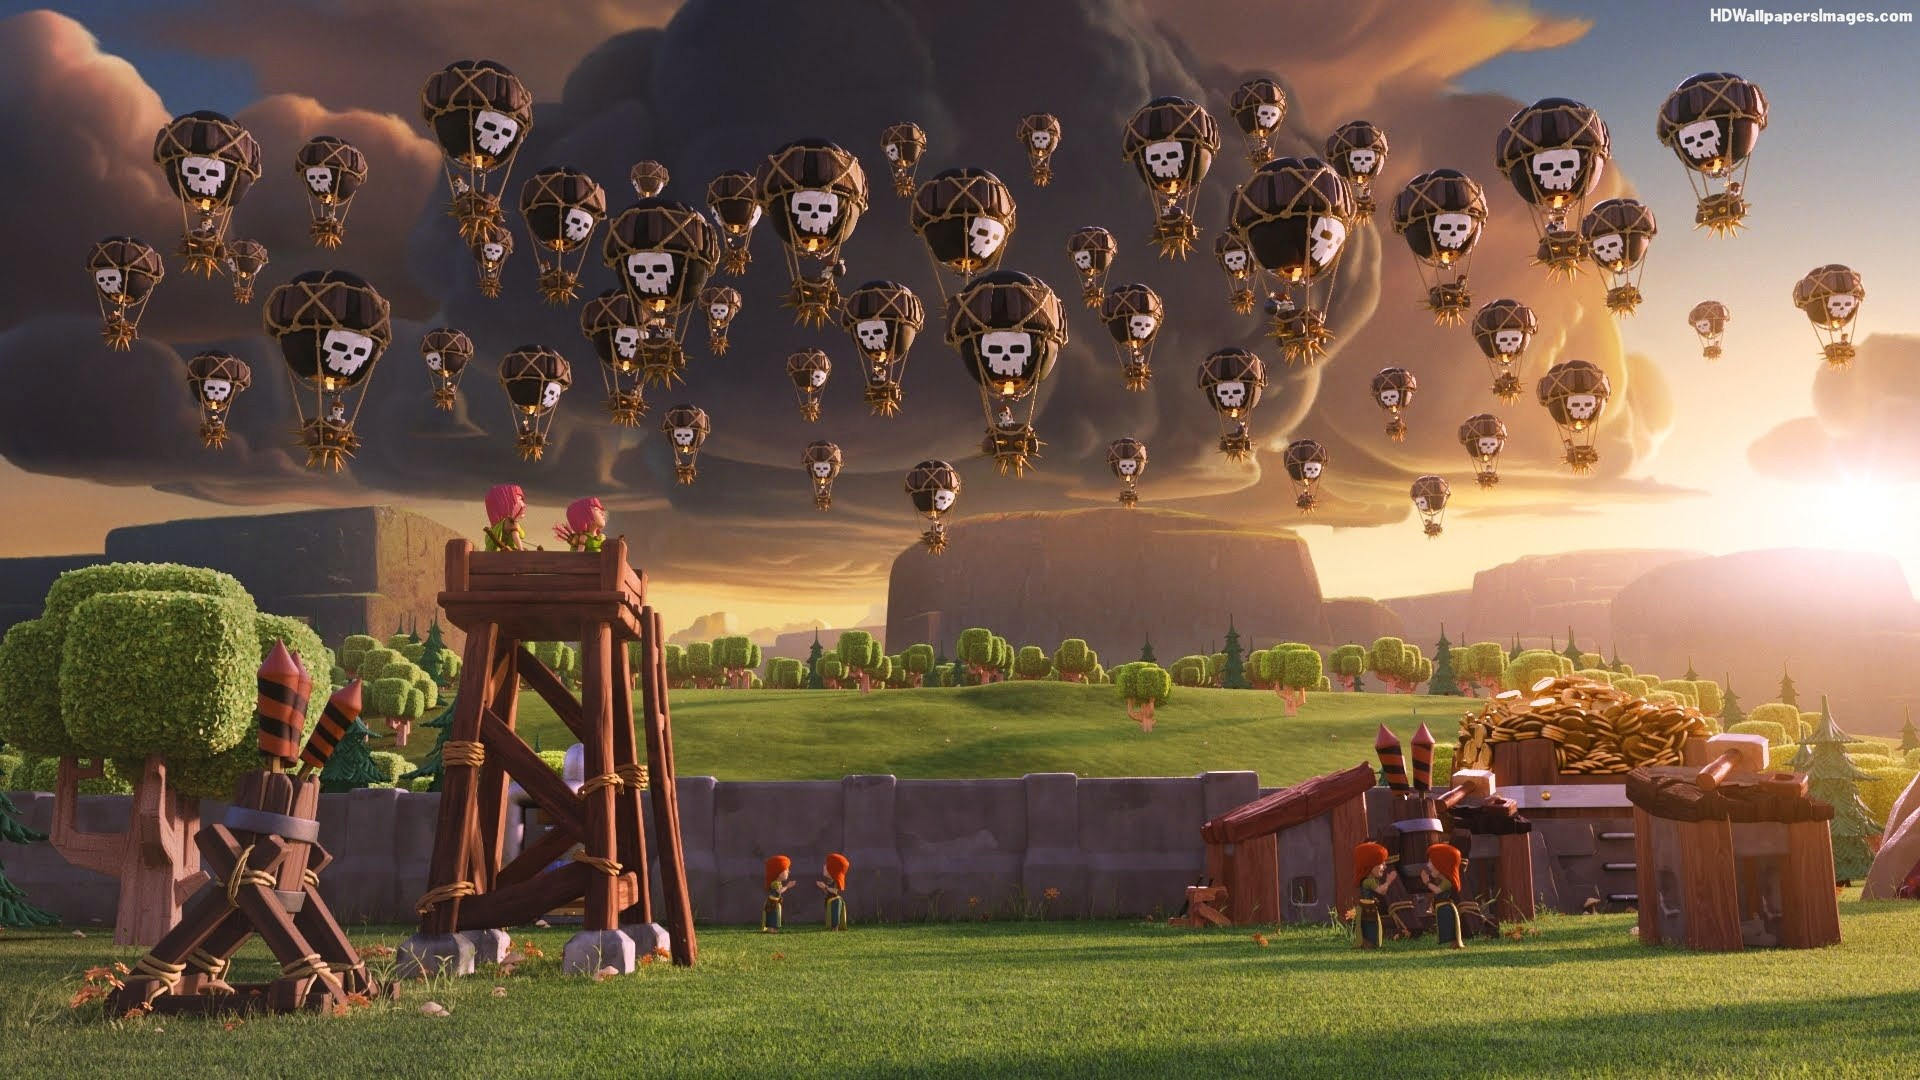 Clash of Clans Compilation Wallpapers  Clash of Clans Wallpaper 1920x1080